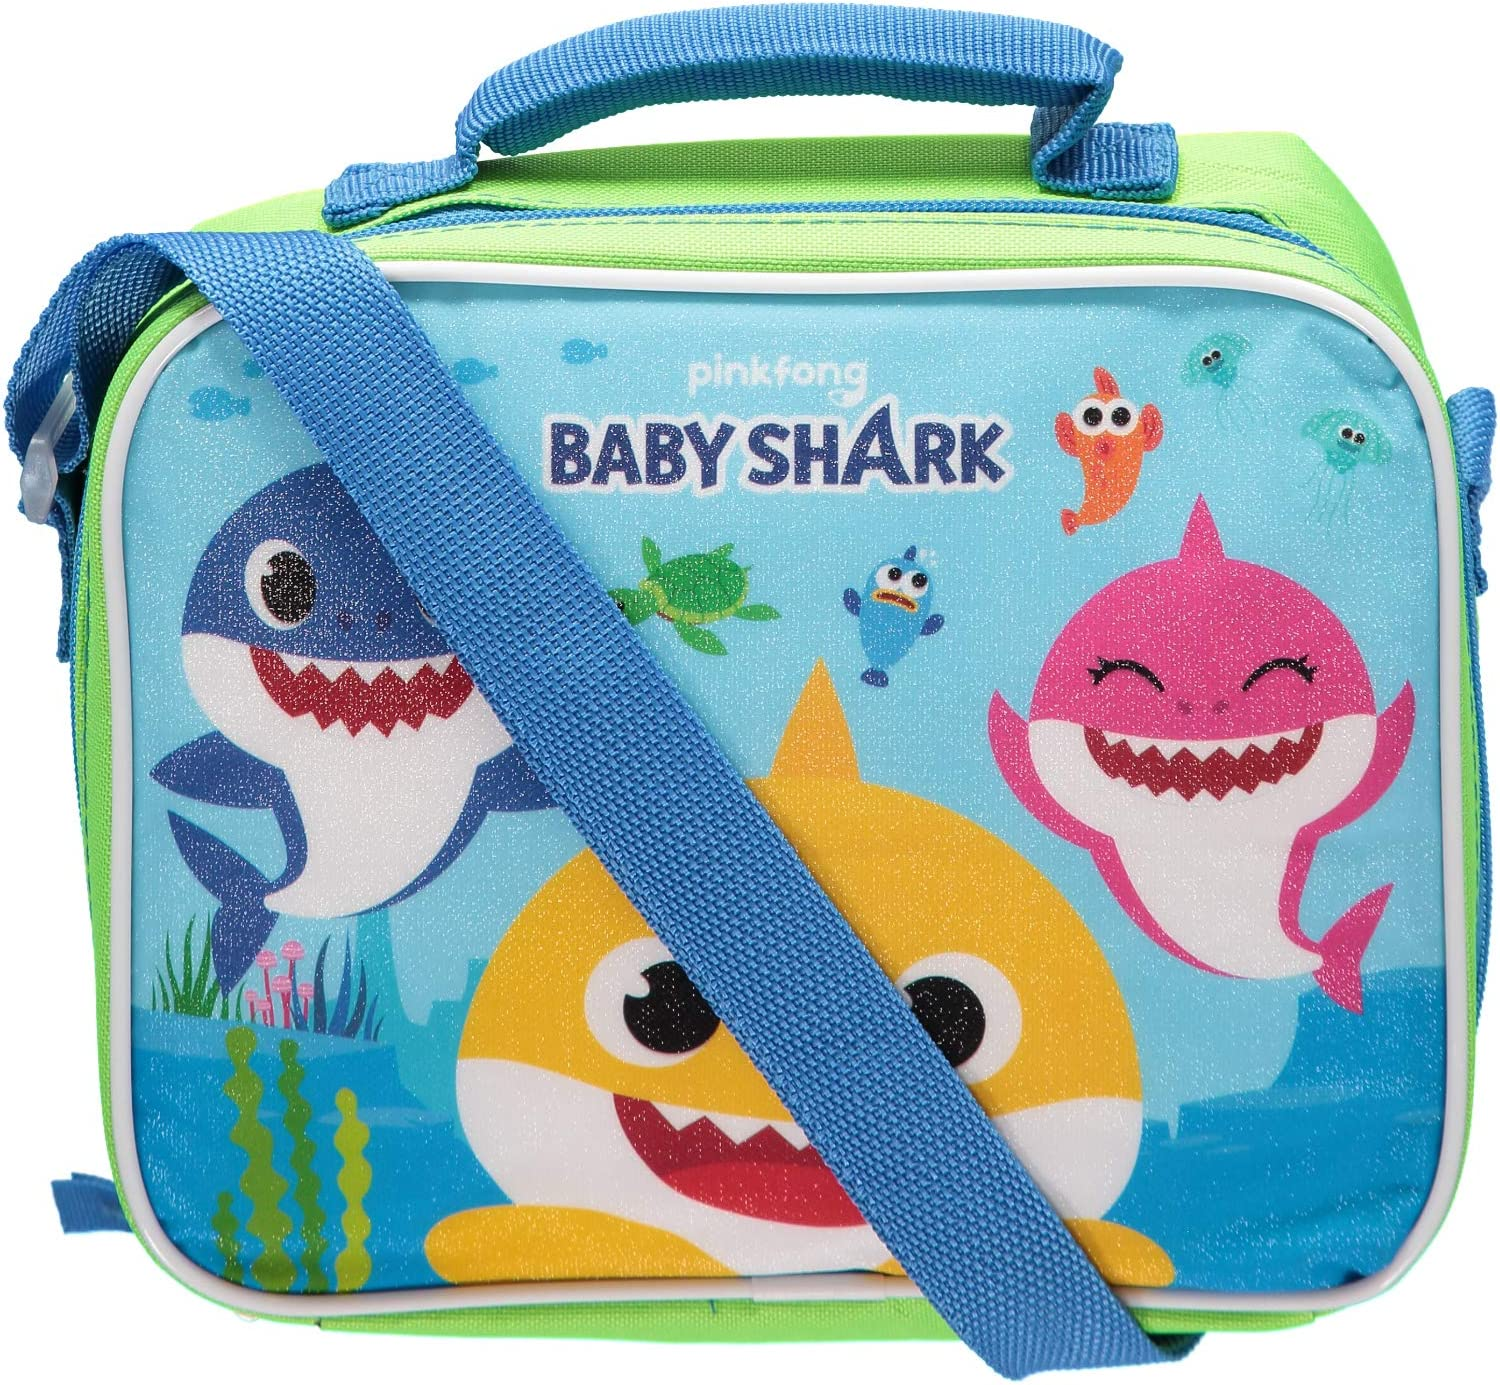 Baby Shark 3 Bag with Strap Lunch Box, small, Blue